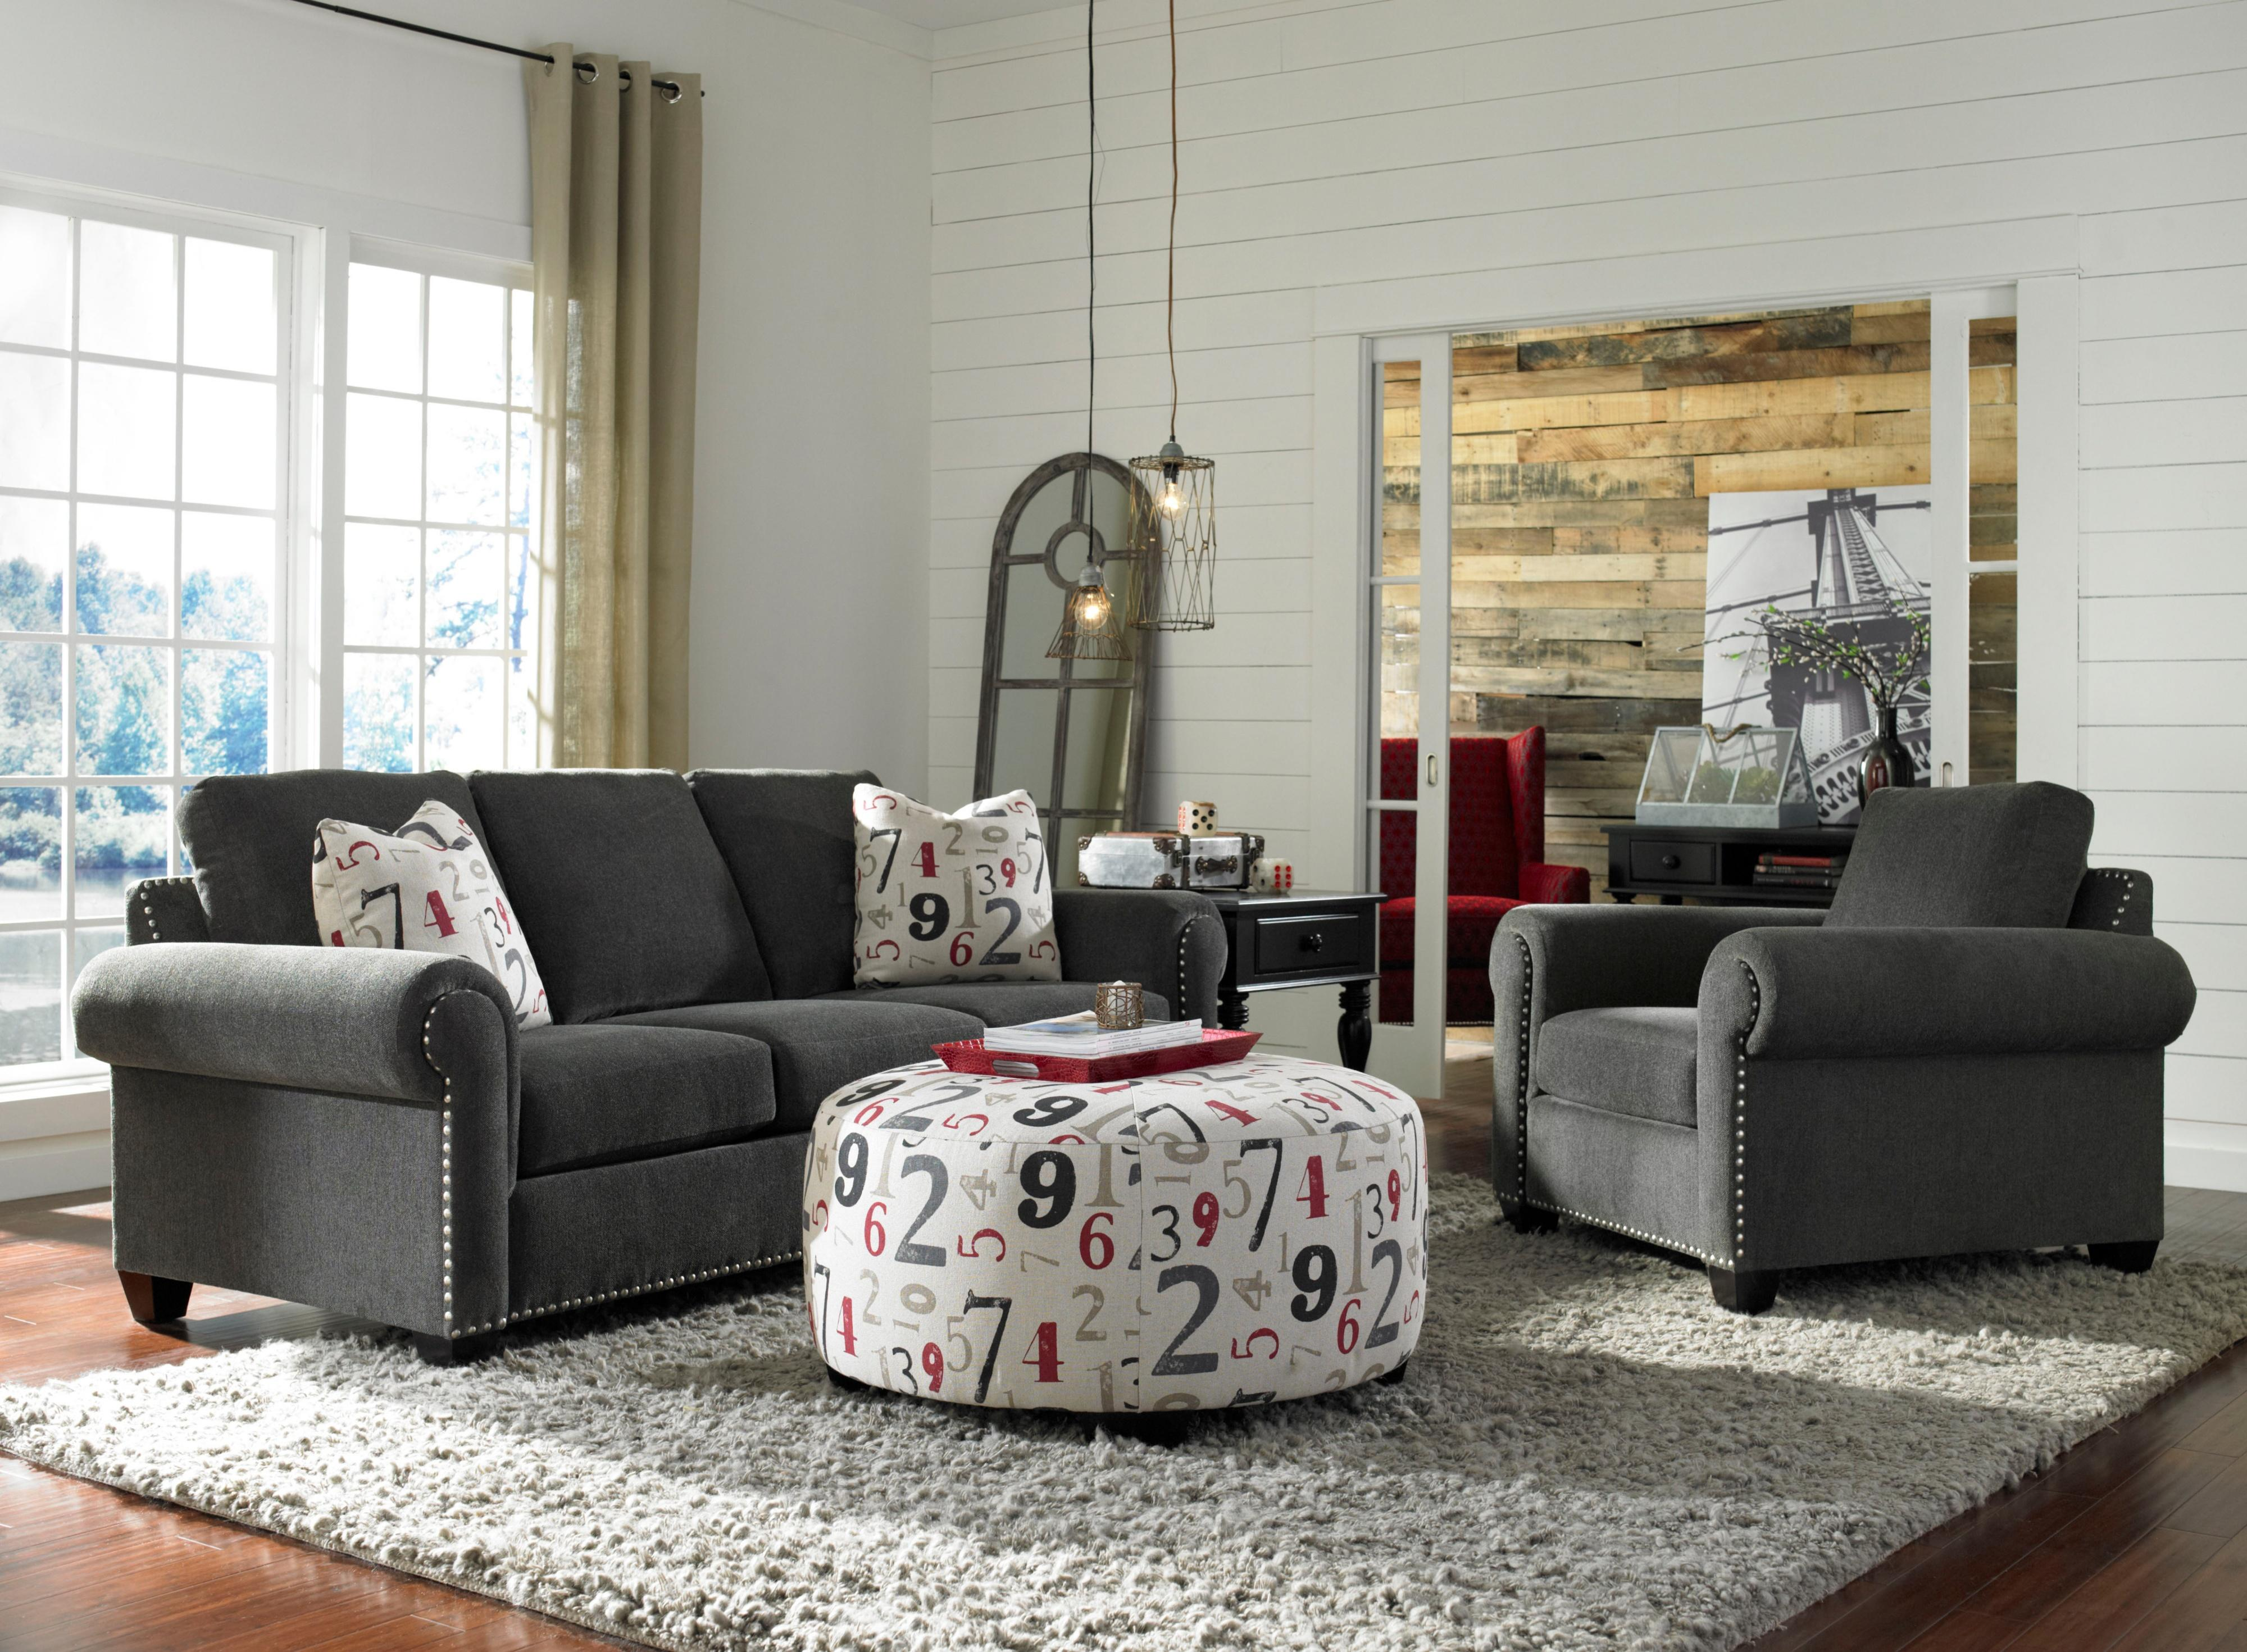 Broyhill Furniture Rowan Stationary Living Room Group Ahfa  # Muebles En Fayetteville Nc